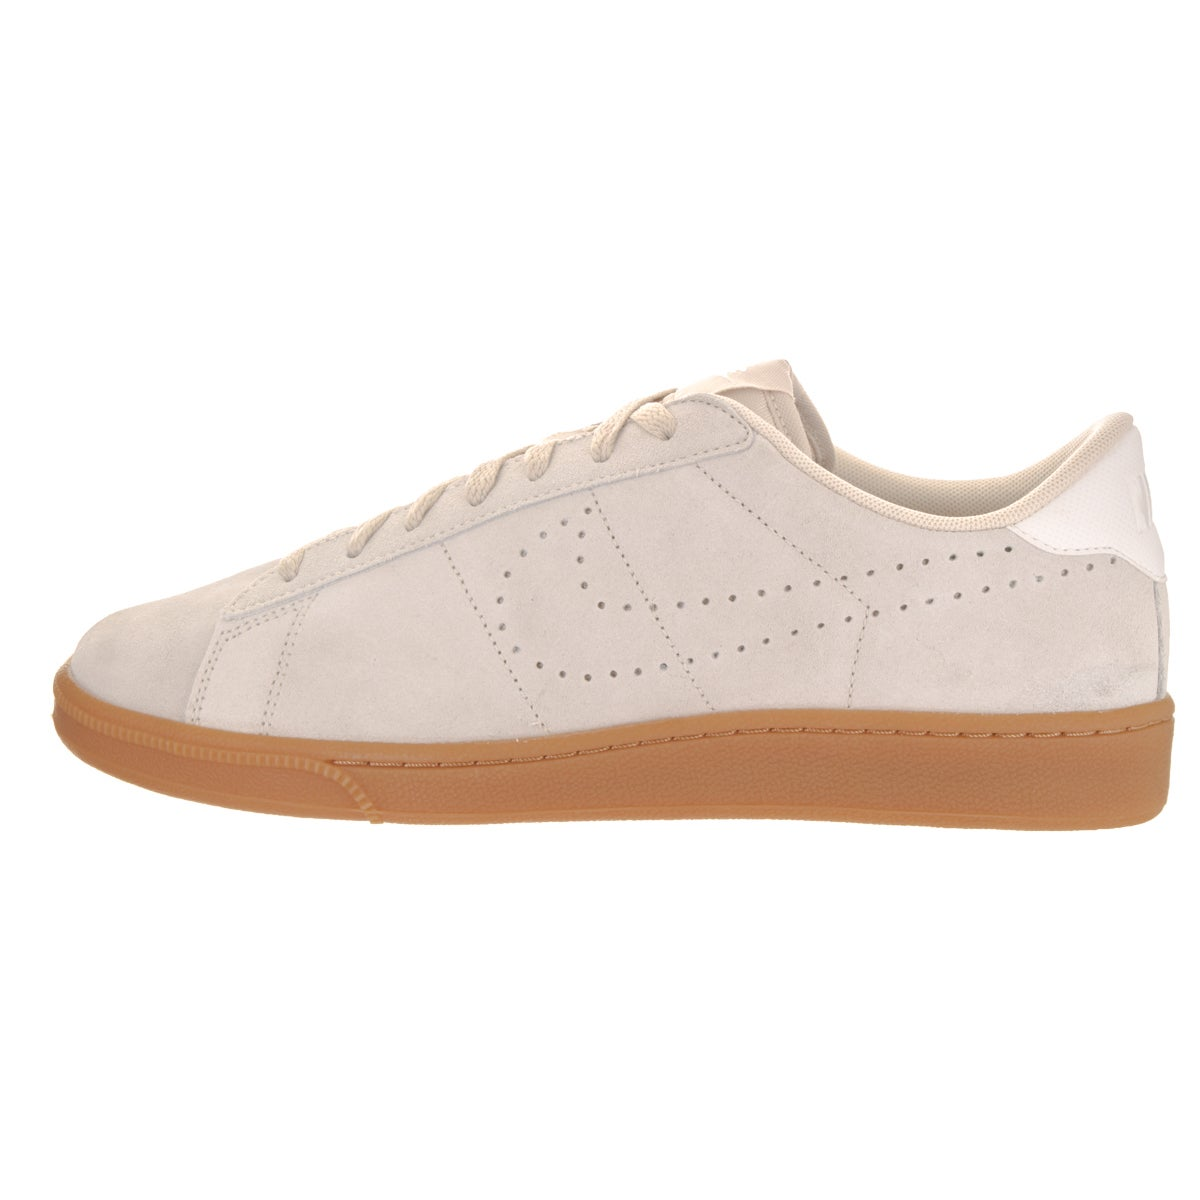 differently 35604 a55e5 Shop Nike Men s Tennis Classic CS Suede Tennis Shoes - Free Shipping Today  - Overstock - 14193422